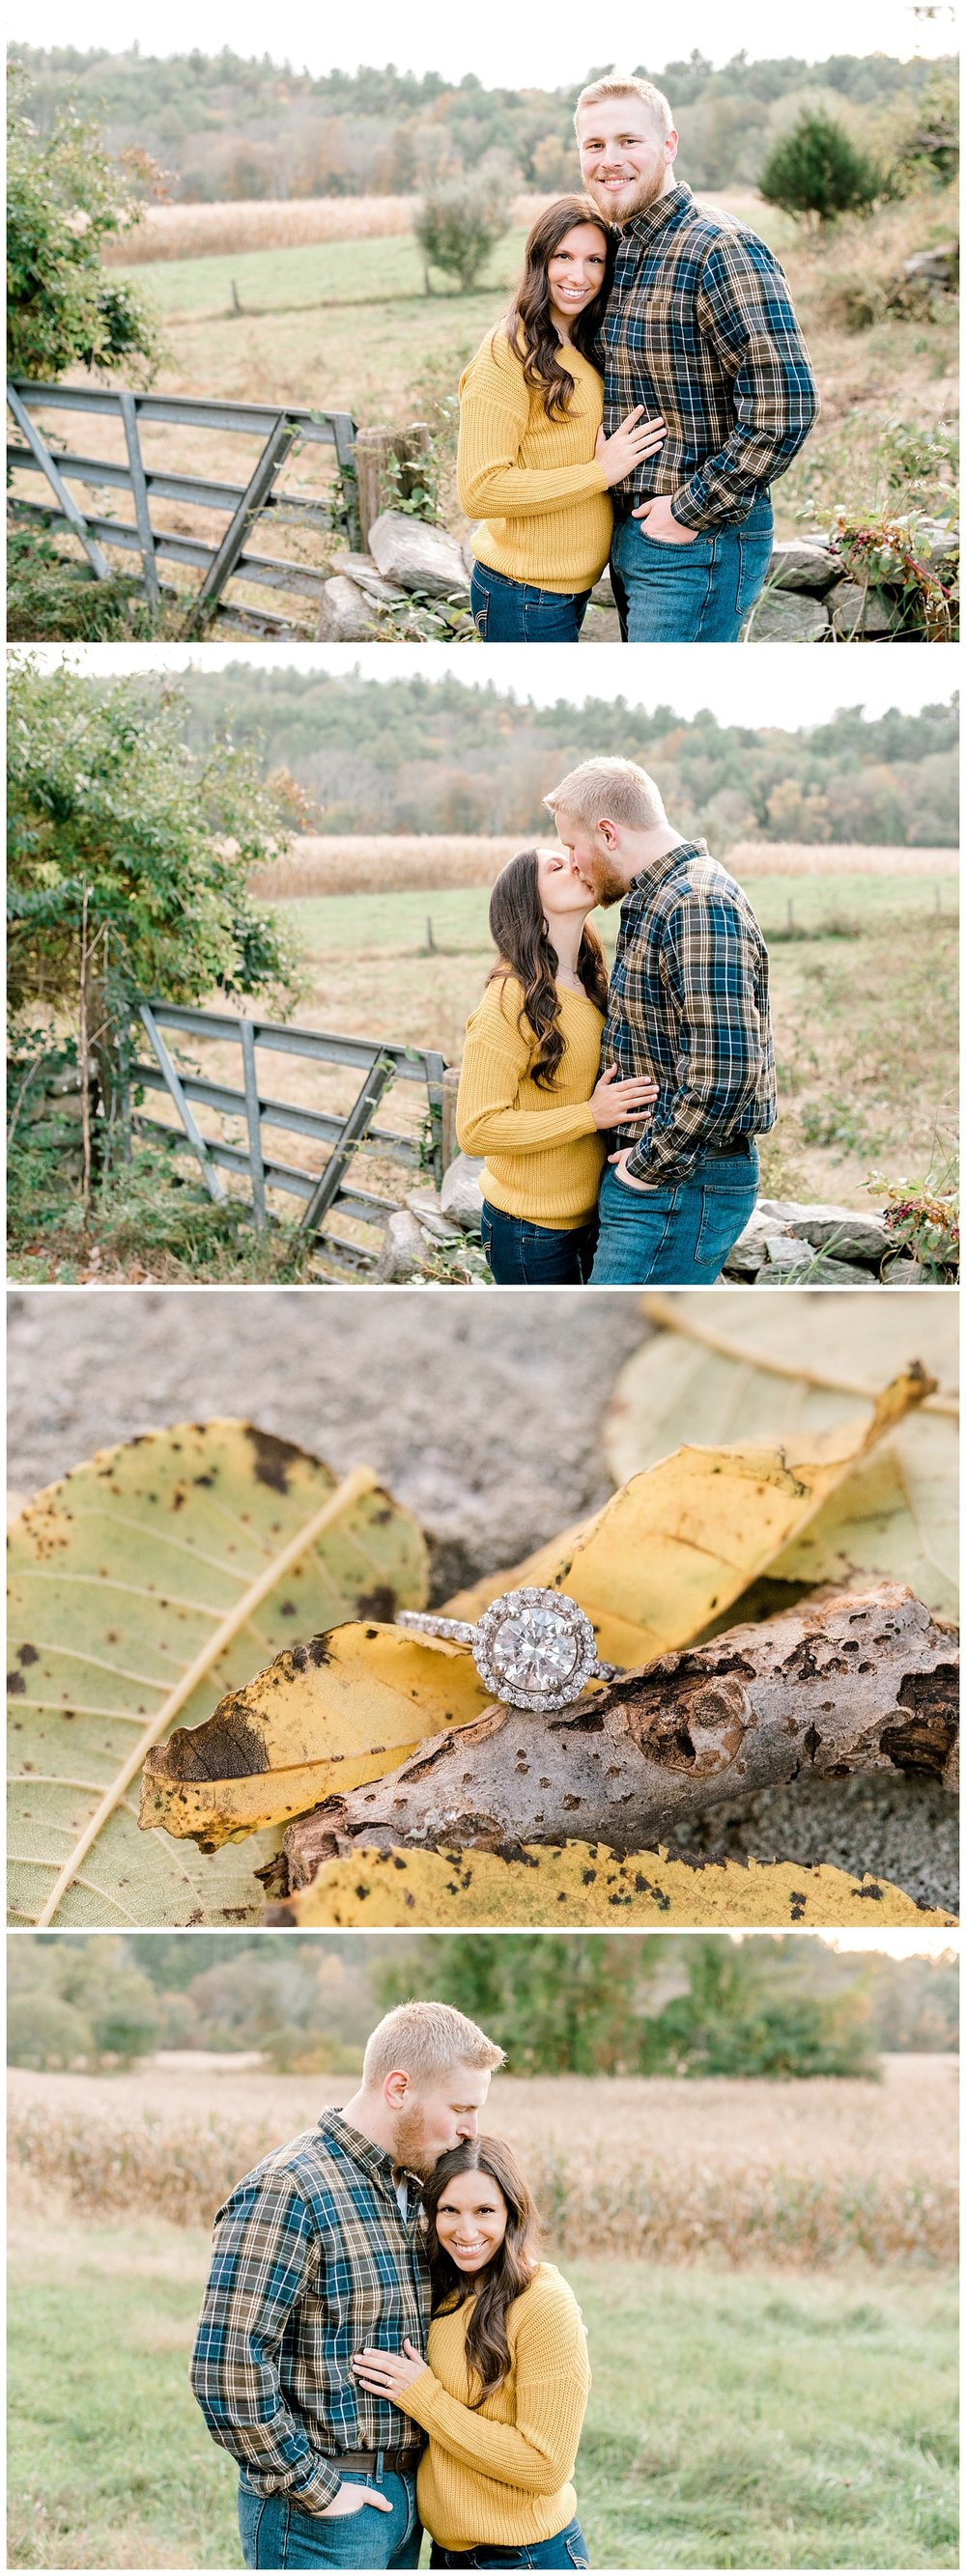 october18-connecticut-engagement-photography-rustic-farm-5.jpg